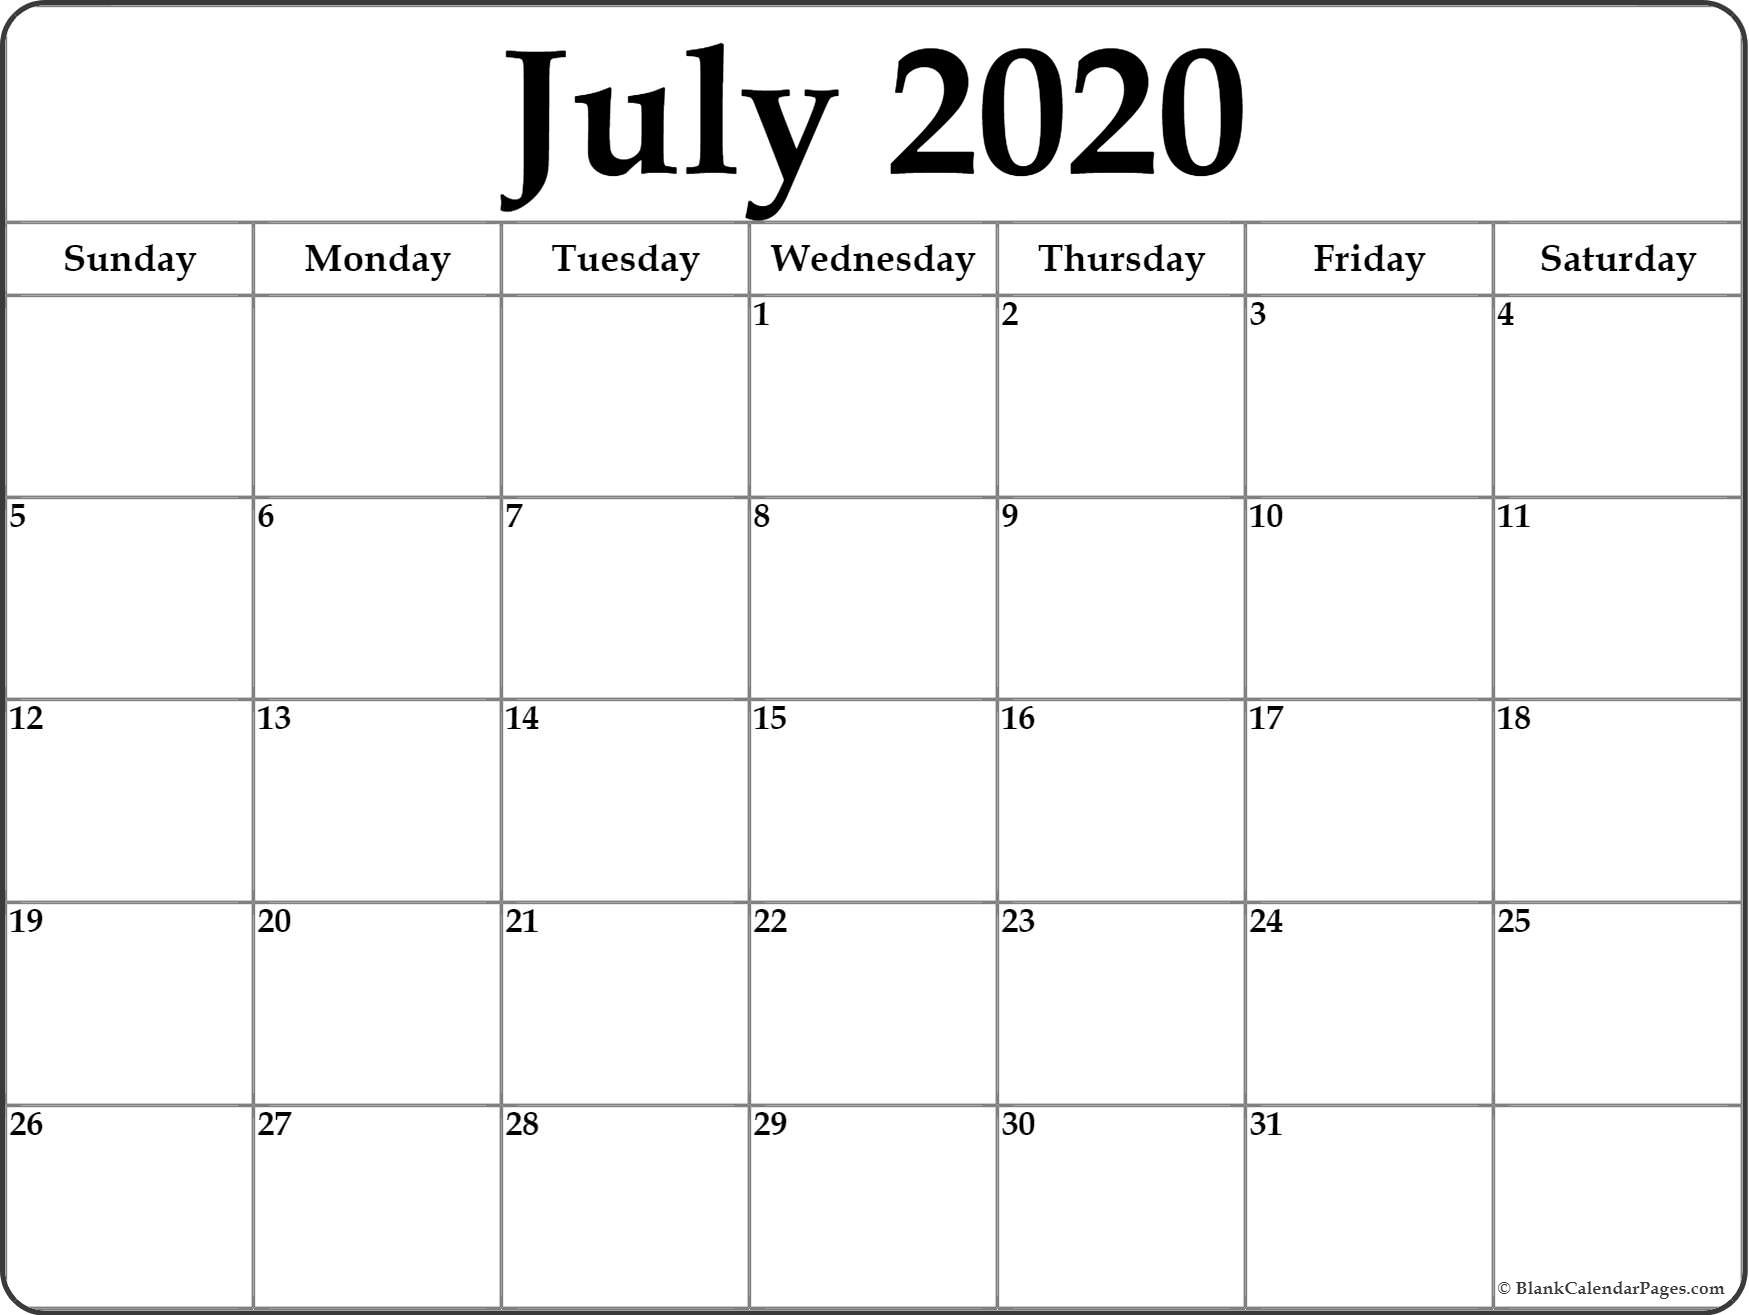 July 2020 Calendar | Free Printable Monthly Calendars  Calendar Month To Month Print